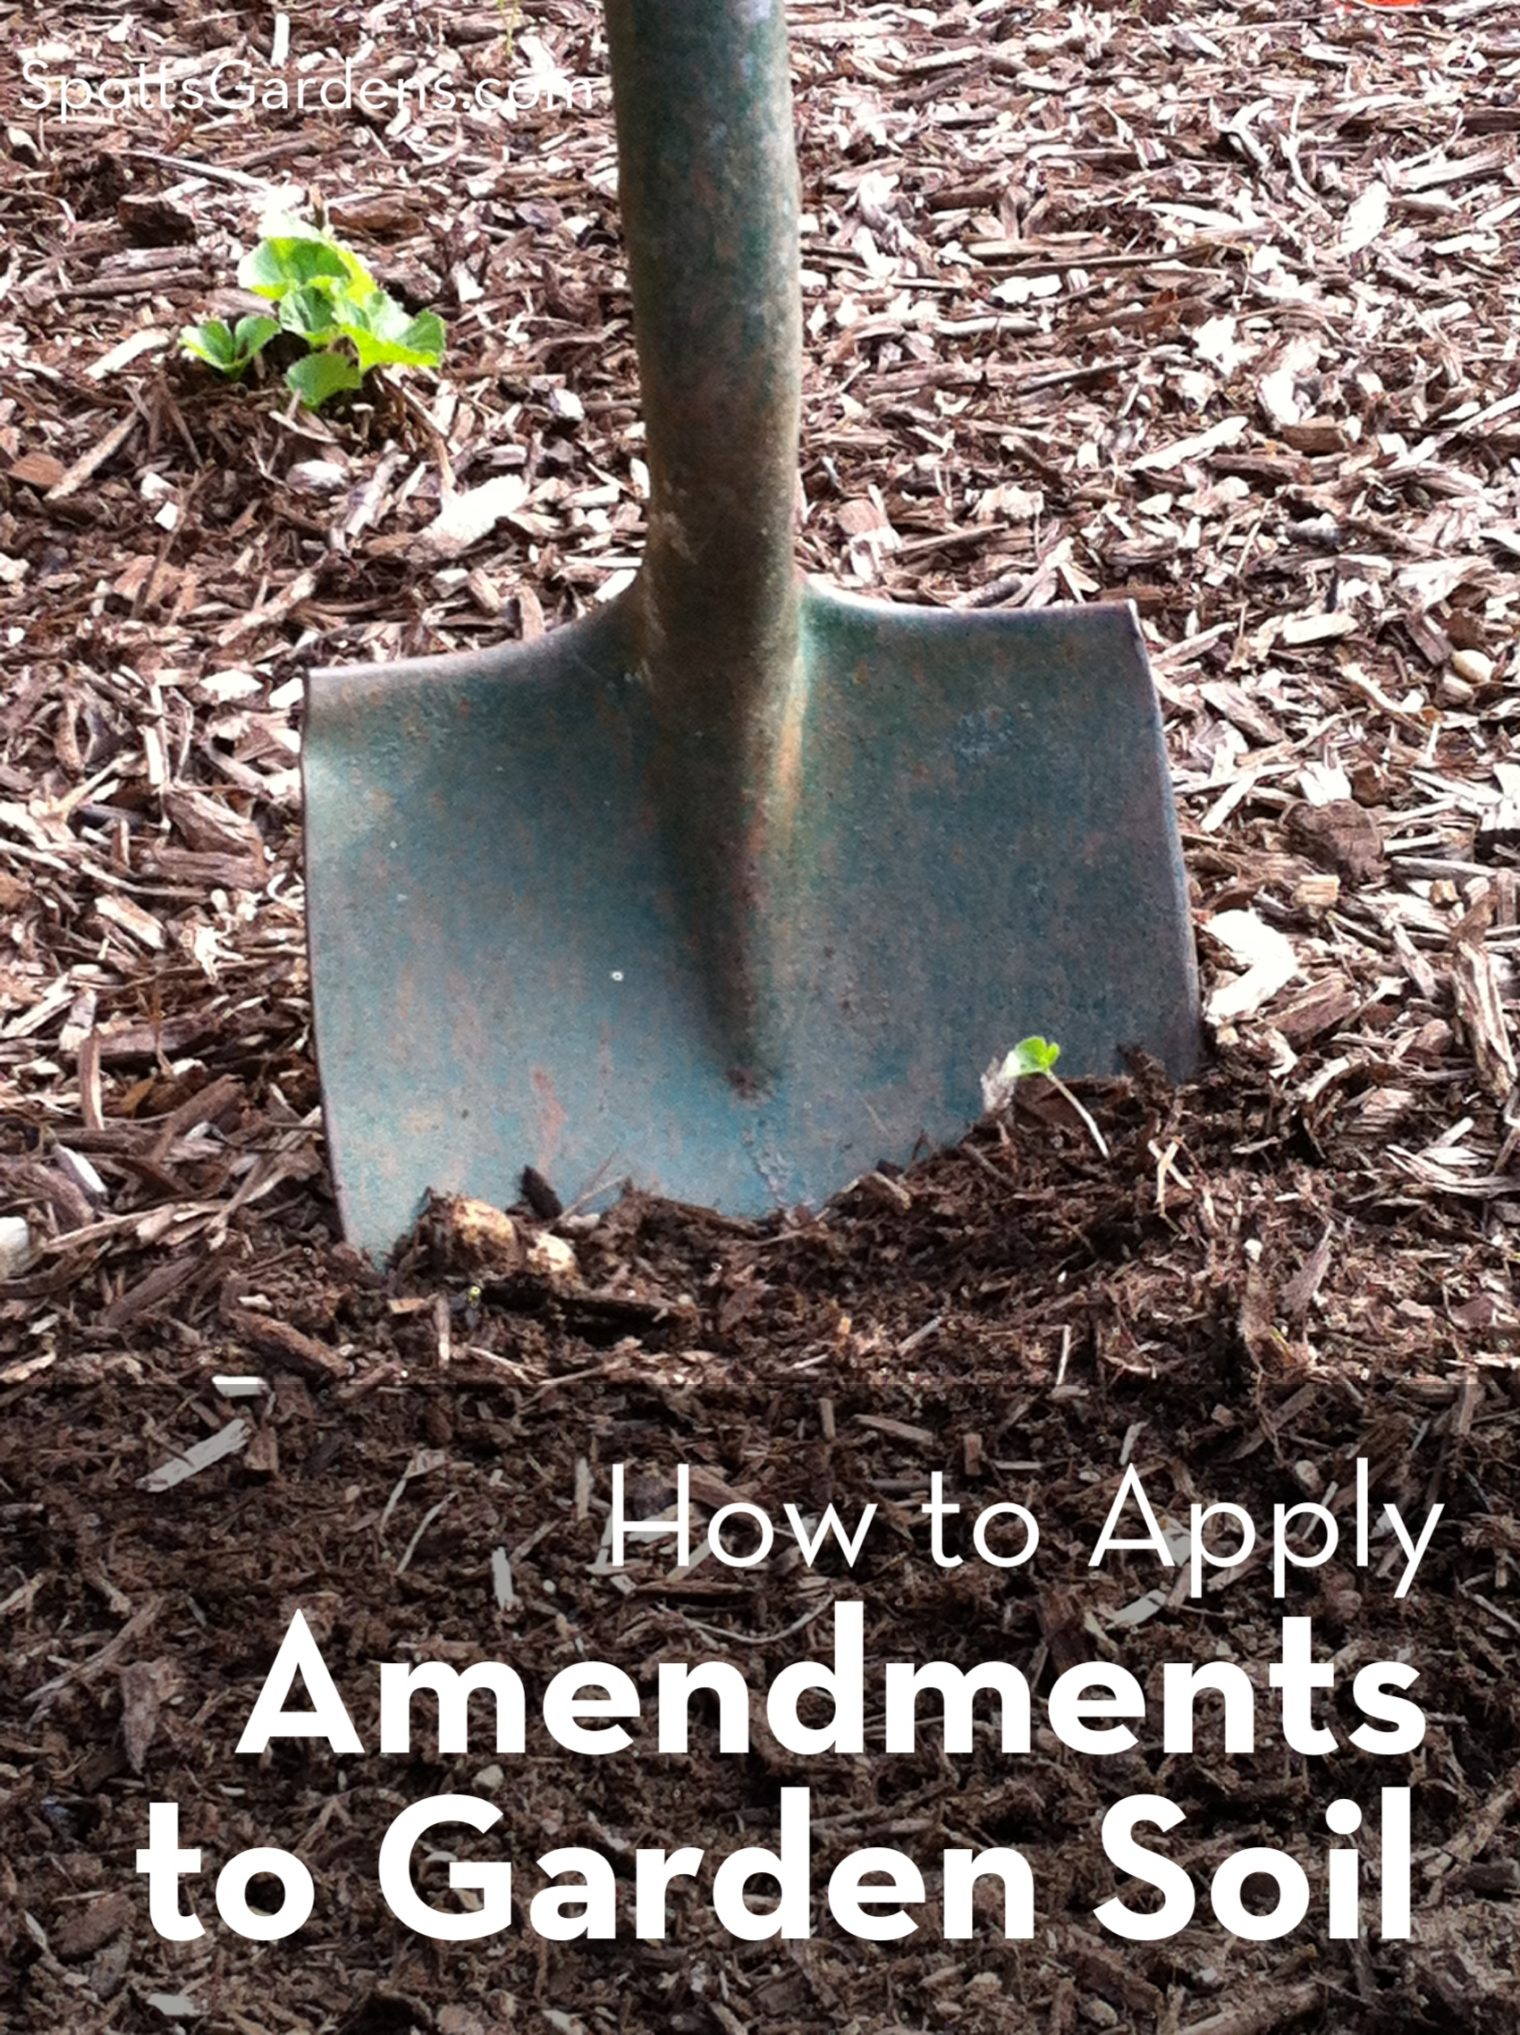 How to Apply Amendments to Garden Soil